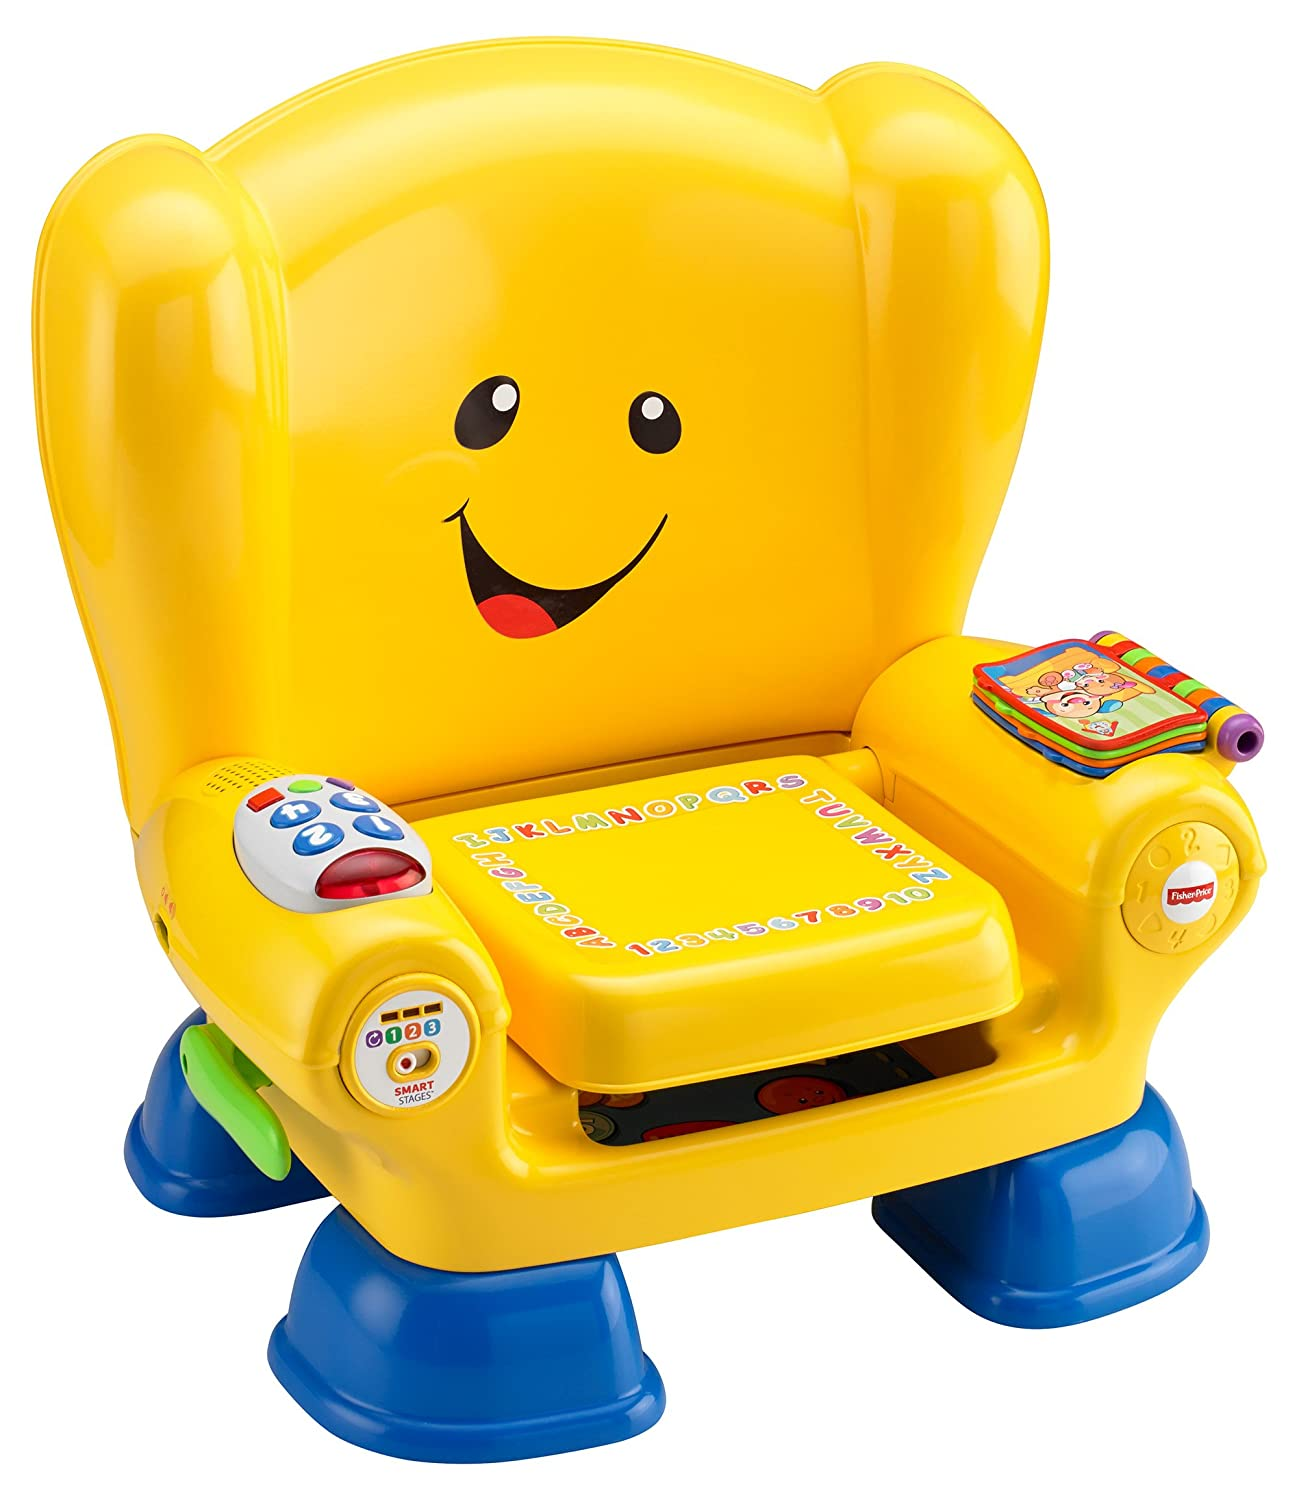 Toys For 1 Year Old Boys This Fisher Price Laugh Learn Smart Stages Chair